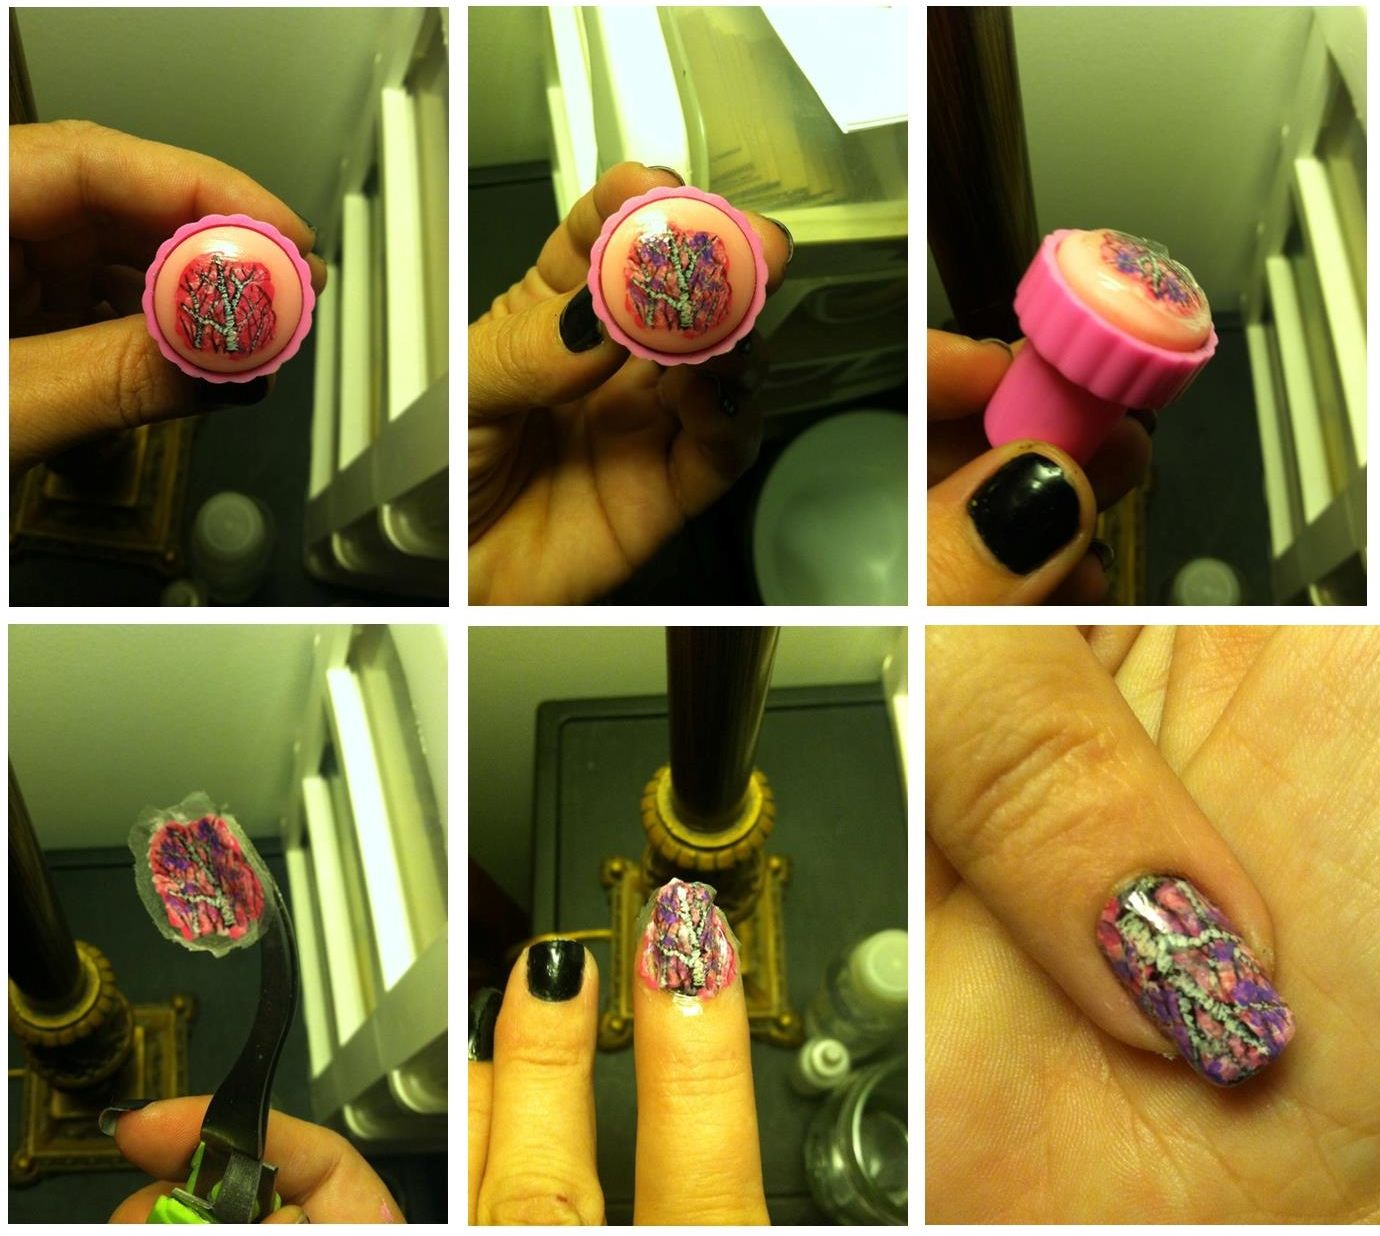 Diy Nail Art Stickers Made With Acrylic Paint Clear Topcoat And Glued In Place Sealed With Clear Topcoat Mudd Nail Art Stickers Nail Art Diy Diy Nails